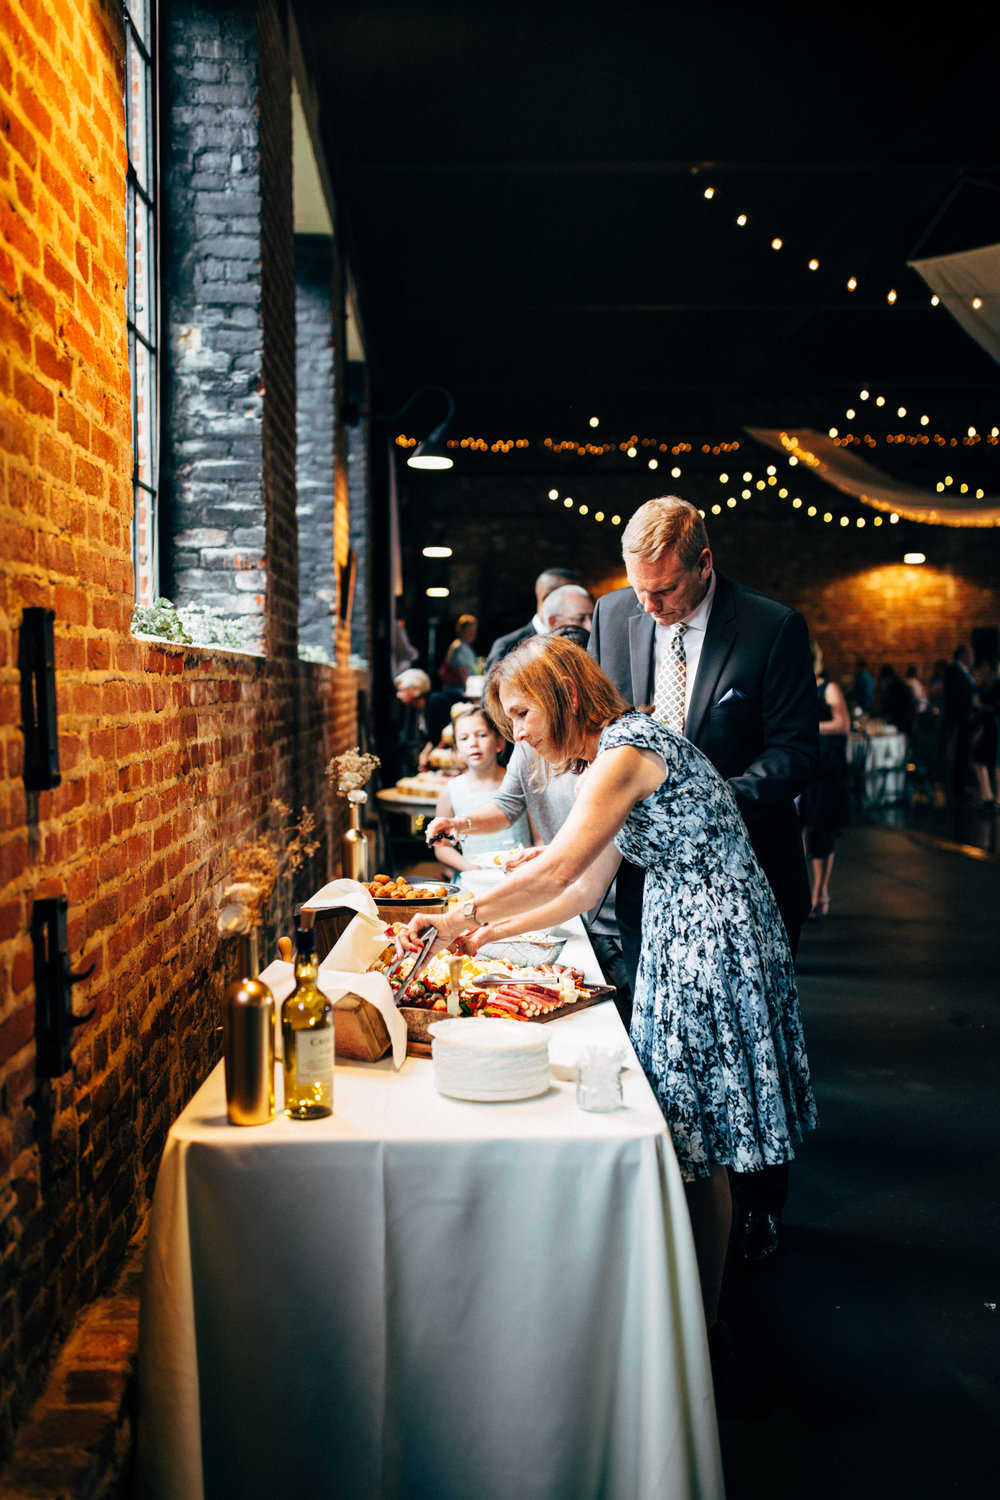 wedding guests eat from charcuterie board during cocktail hour at reception at the Inn at the Old Silk Mill